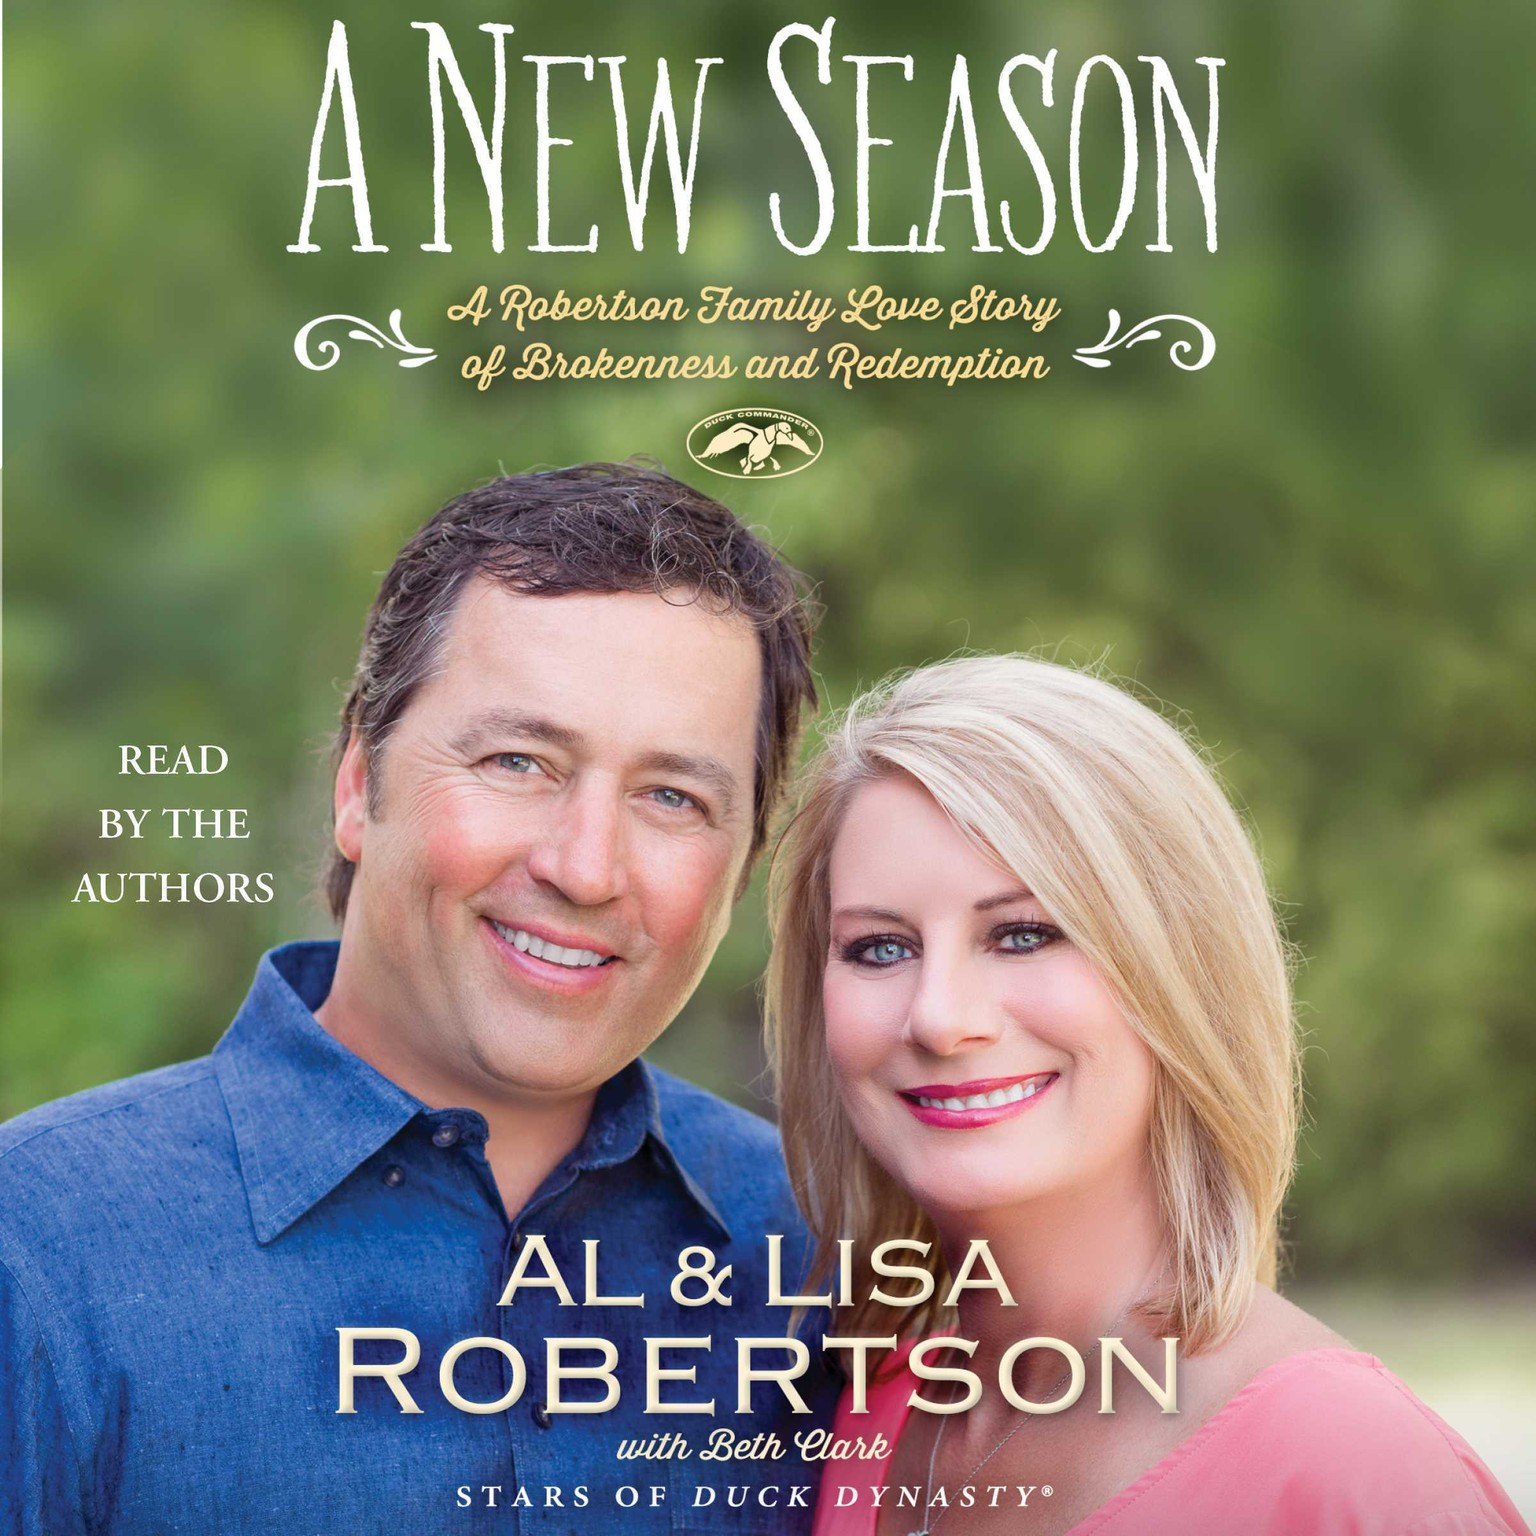 Printable A New Season: A Robertson Family Love sTory of Brokenness and Redemption Audiobook Cover Art